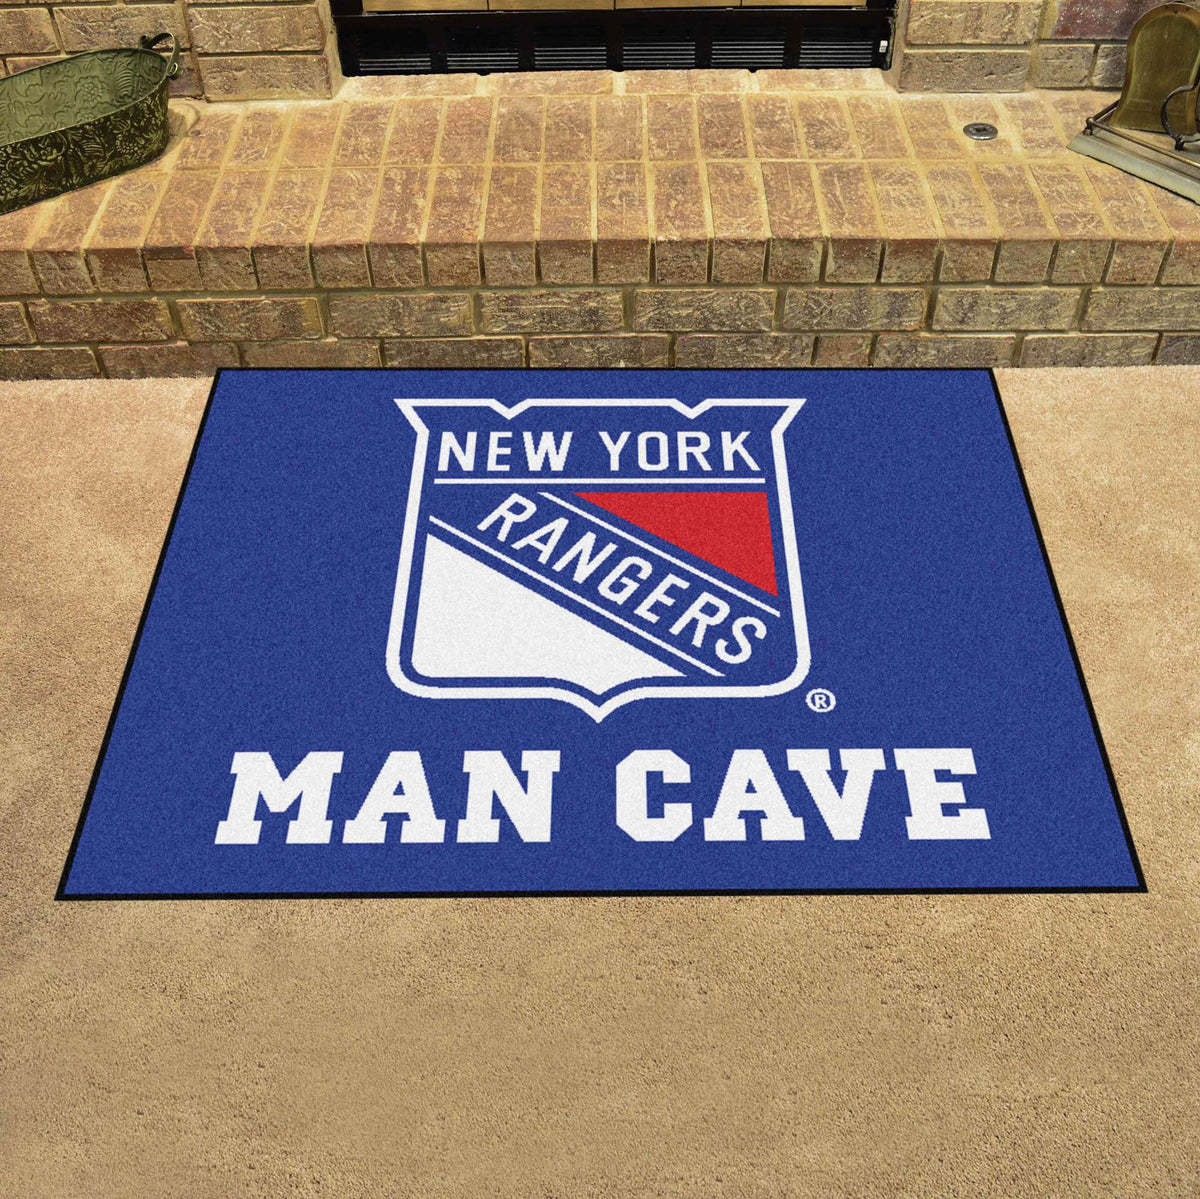 NHL - Man Cave All-Star NHL Mats, Rectangular Mats, Man Cave All-Star Mat, NHL, Home Fan Mats New York Rangers